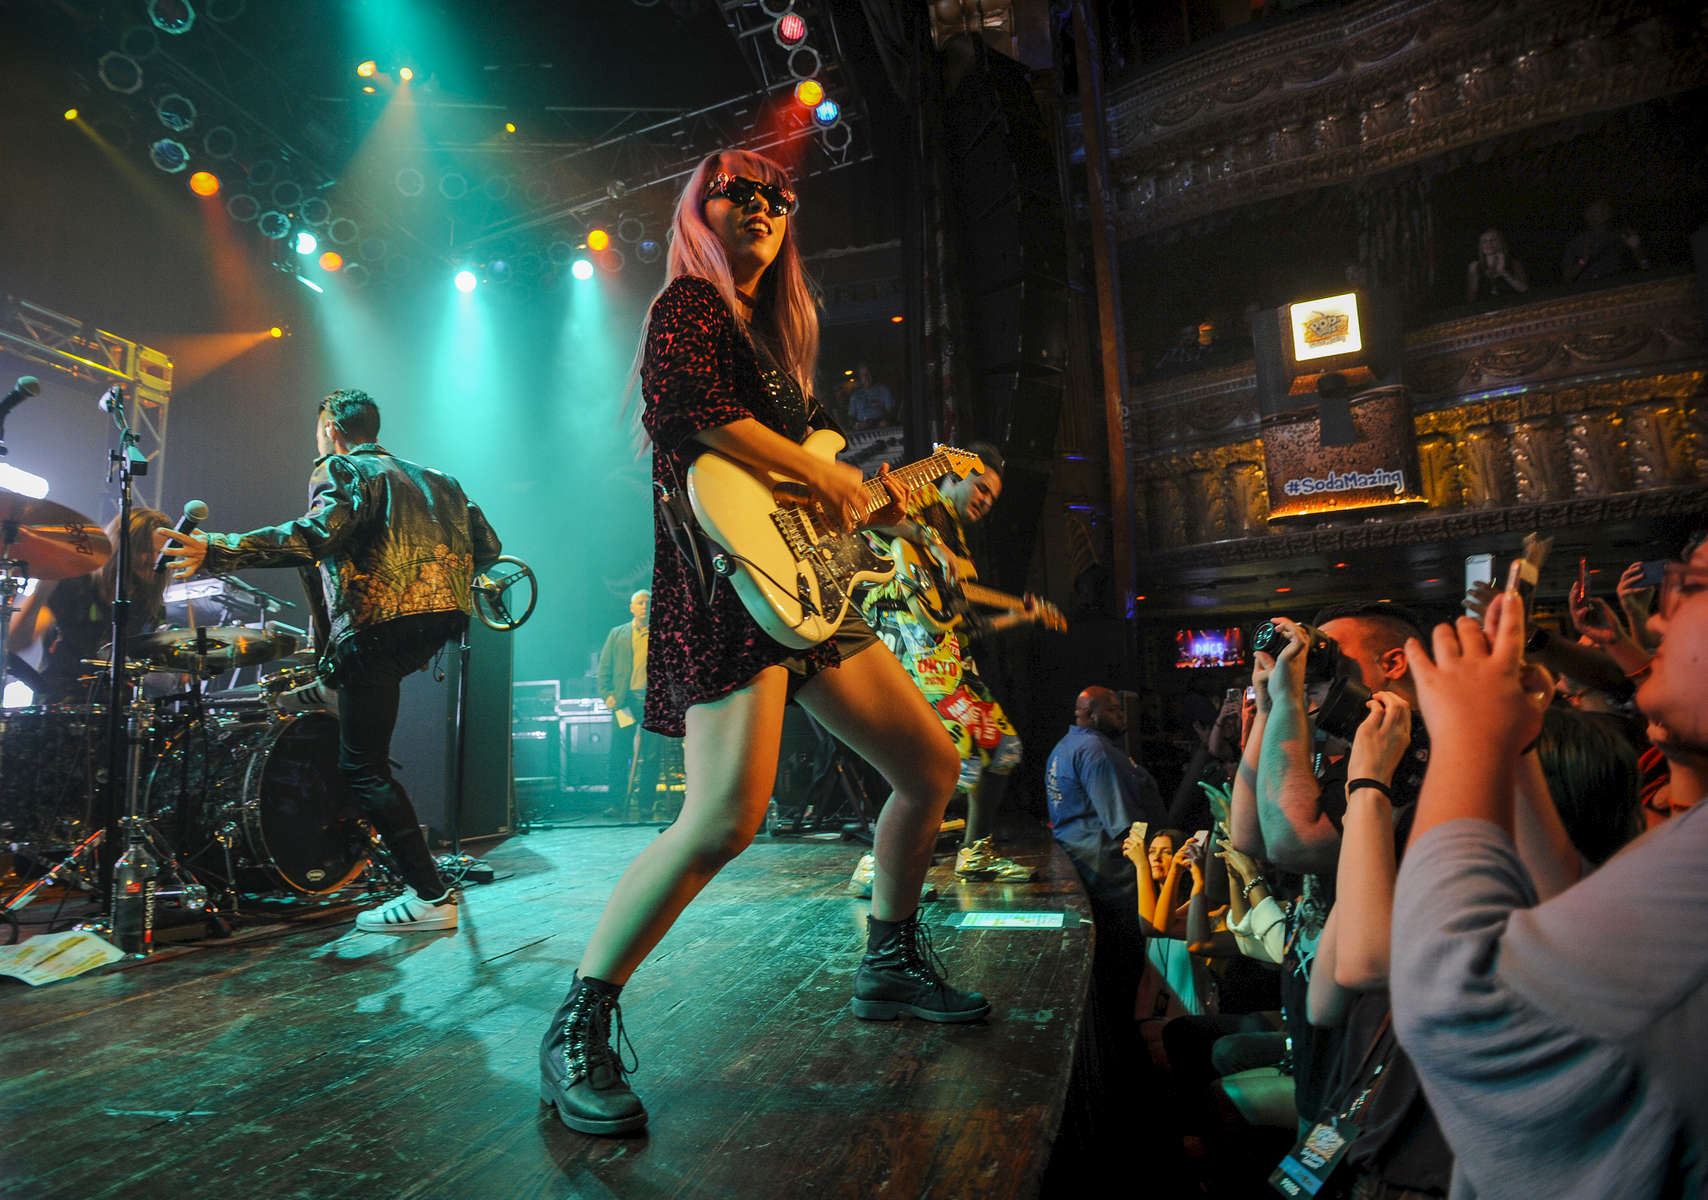 Chicago, IL-DNCE's Joe Jonas, Cole Whittle, JinJoo Lee and Jack Lawless performed their hit single {quote}Cake by the Ocean{quote} at the Pop-Tarts Soda-Mazing Concert at House of Blues Chicago on September 6, 2016. (Photo by Alex Garcia/Invision for Pop-Tarts/AP Images)